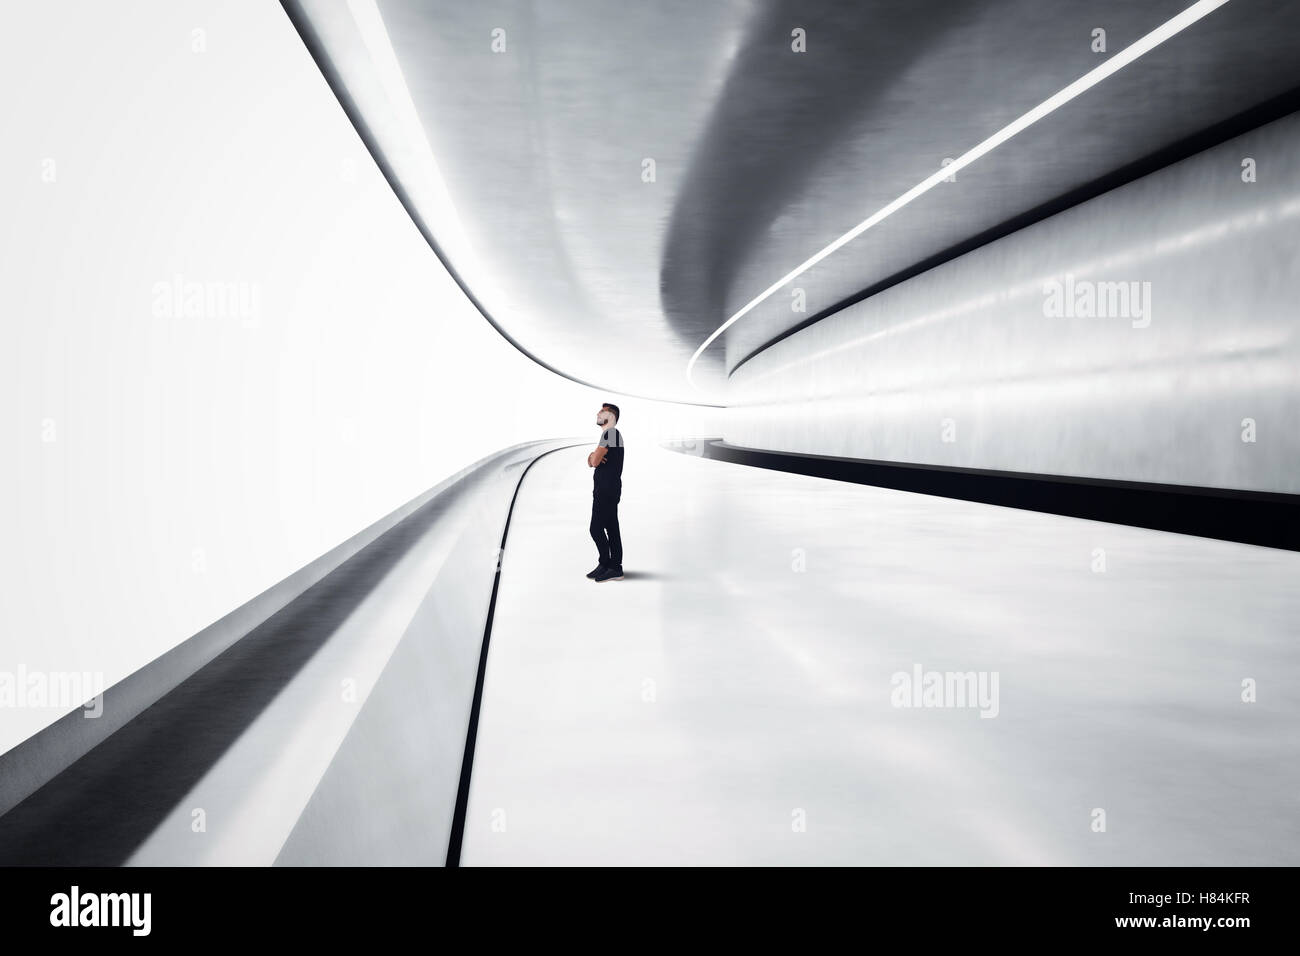 Homme dans un tunnel futuriste Photo Stock